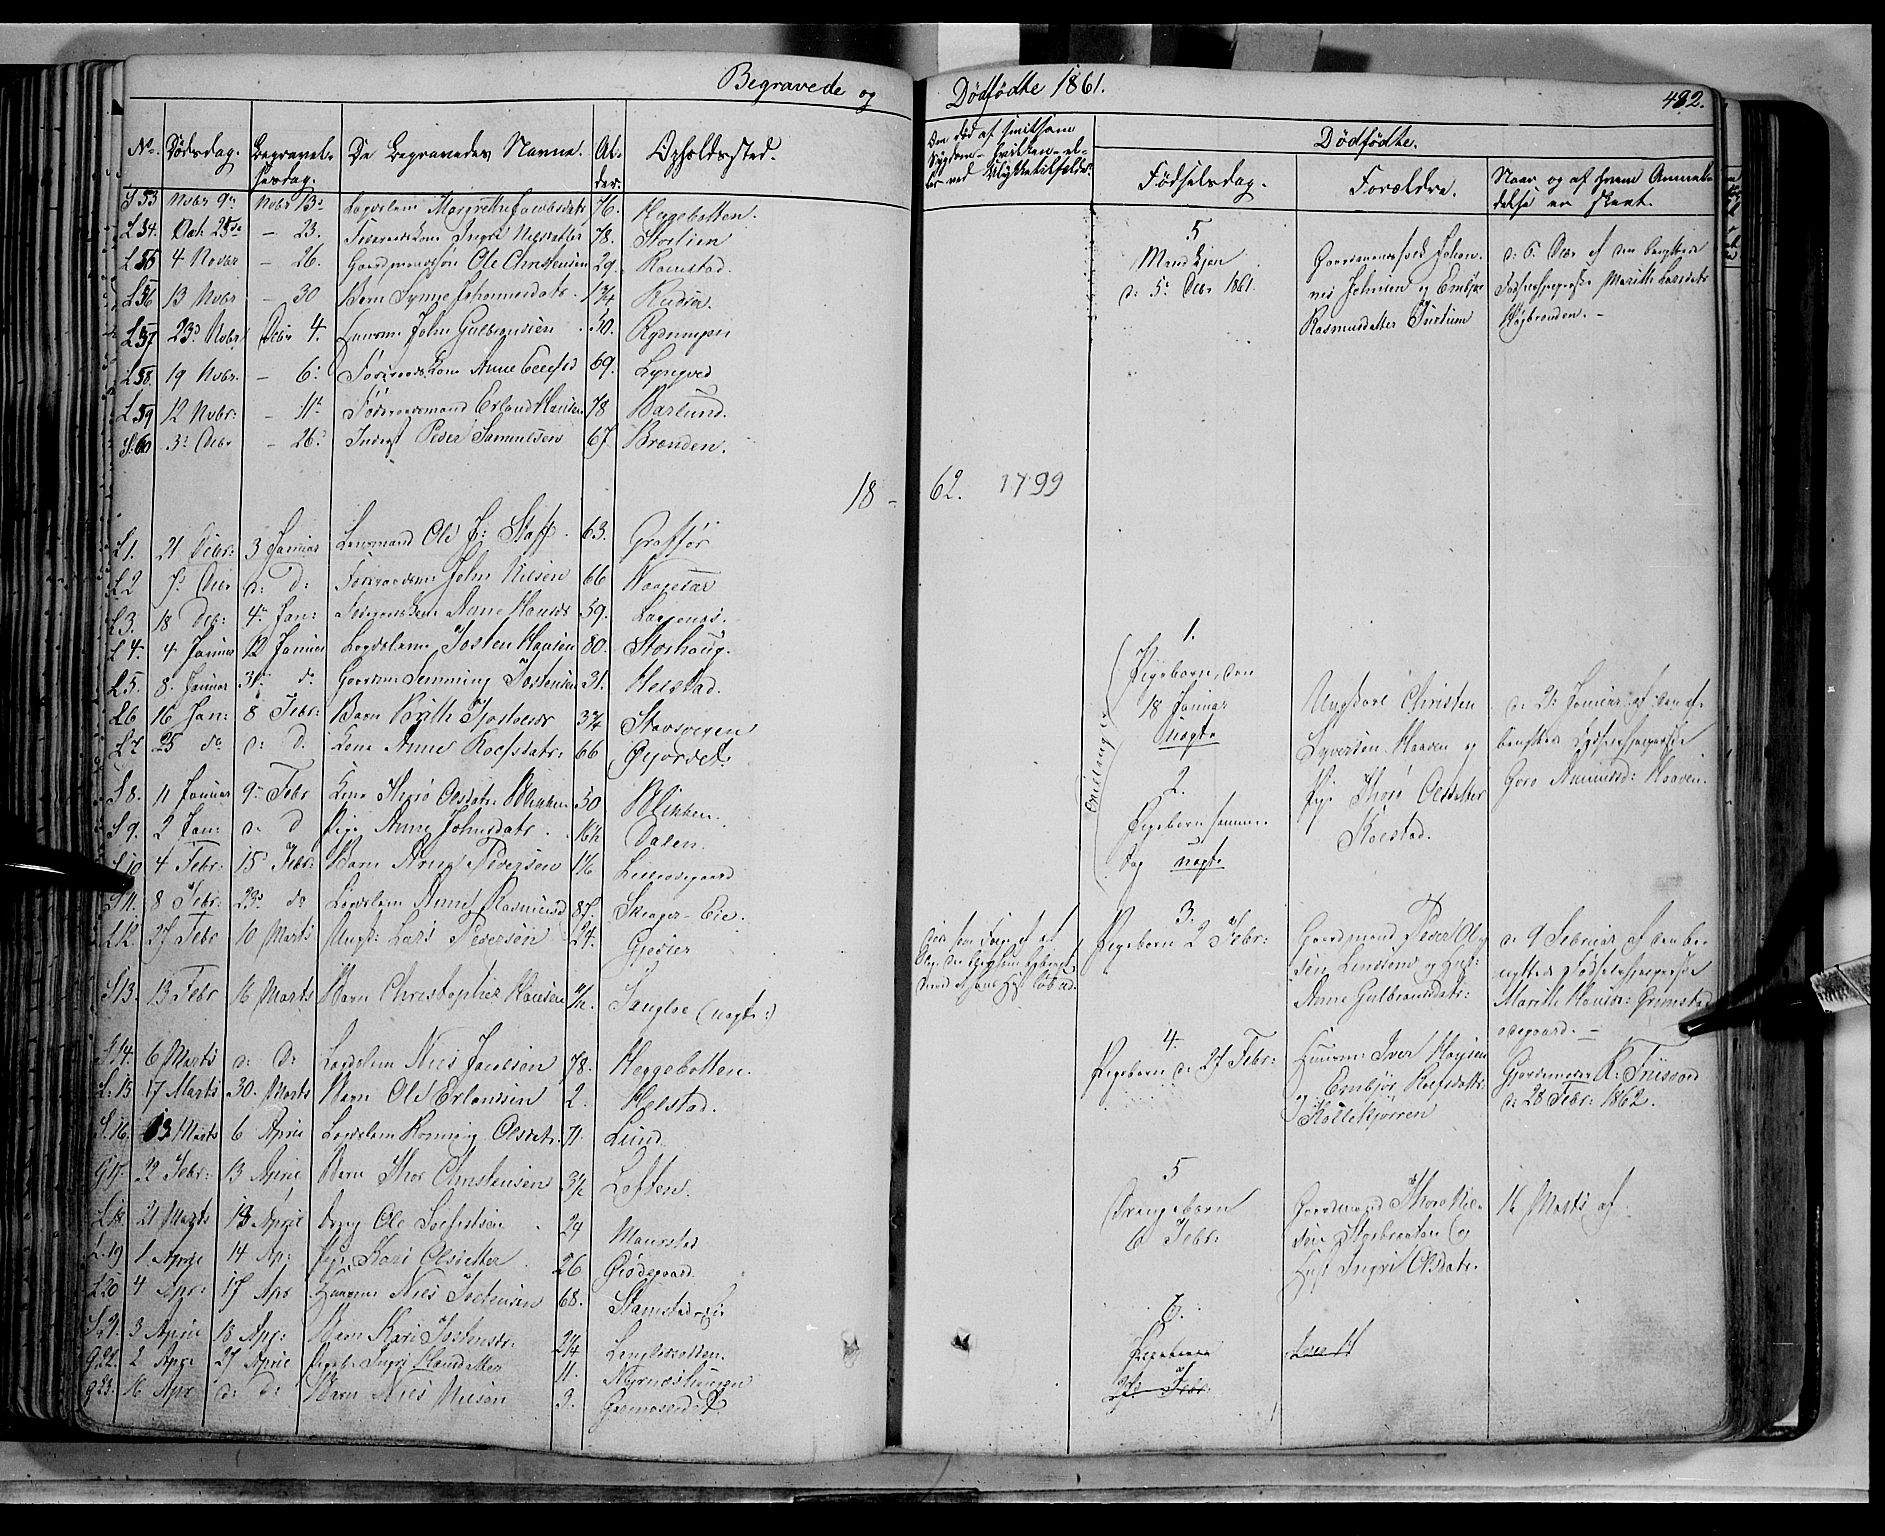 SAH, Lom prestekontor, K/L0006: Parish register (official) no. 6B, 1837-1863, p. 482